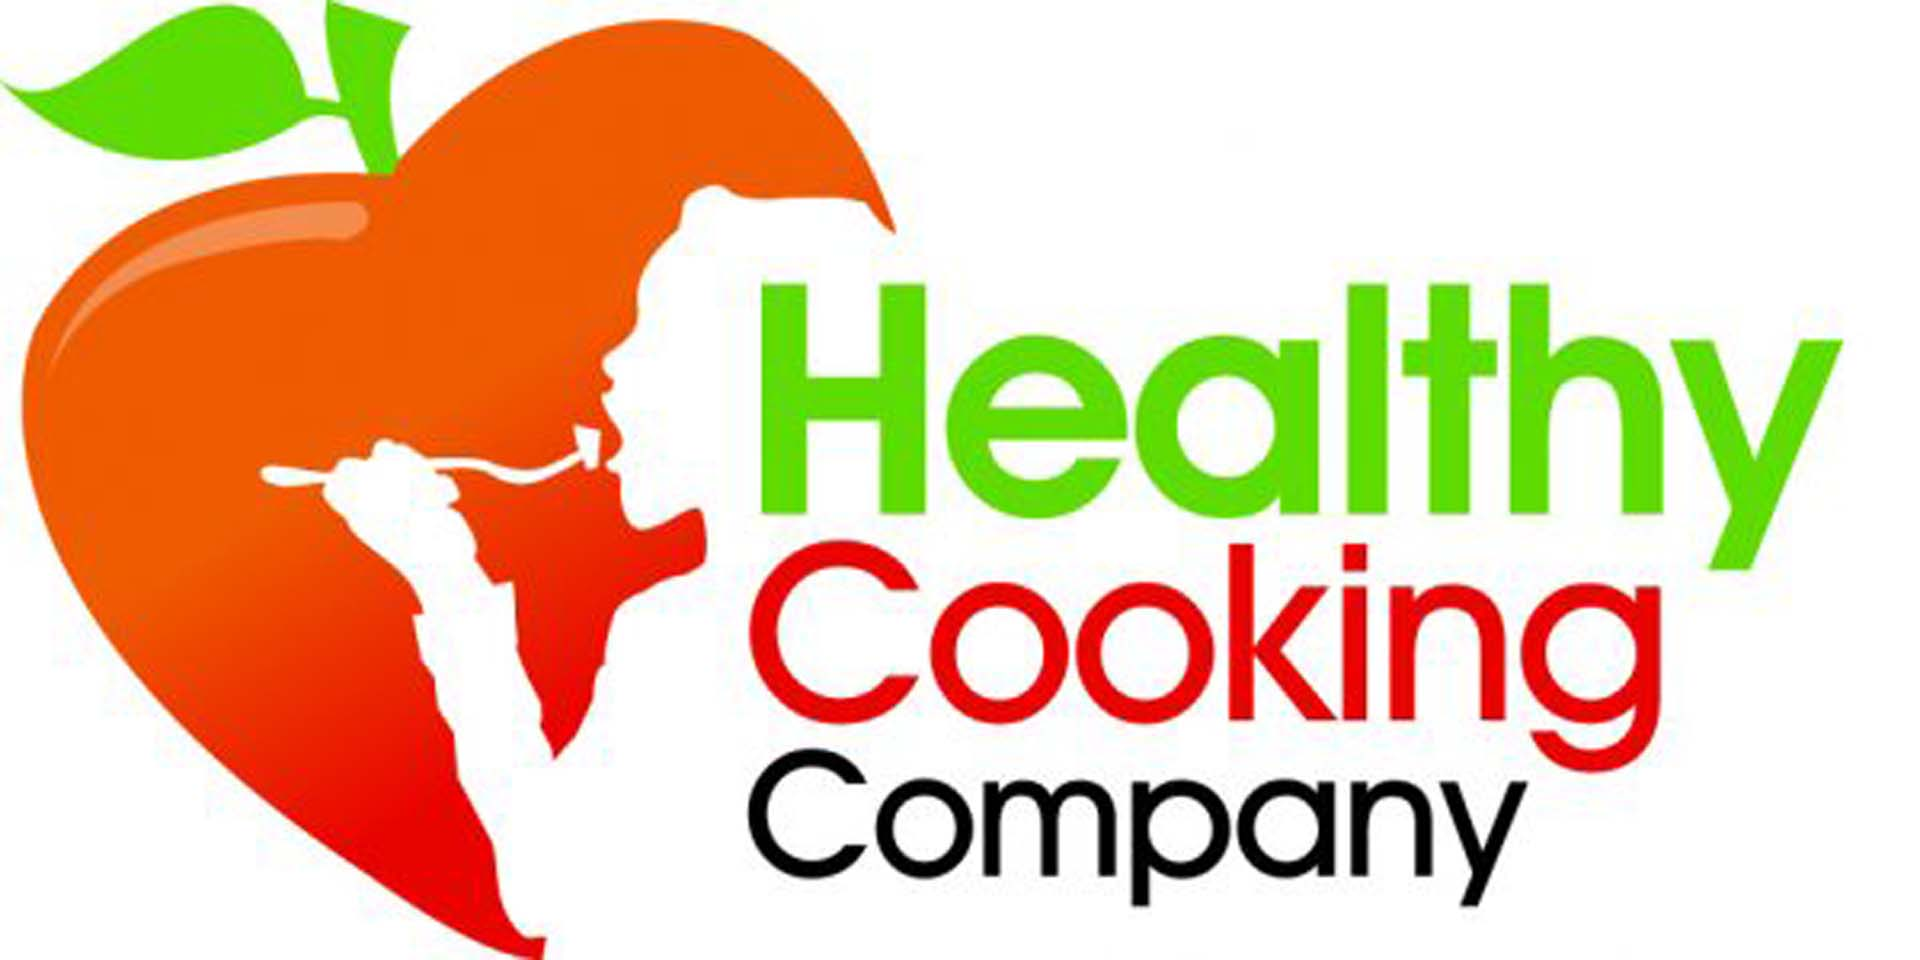 Healthy Cooking Company Pty Ltd_Final_23082012 copy